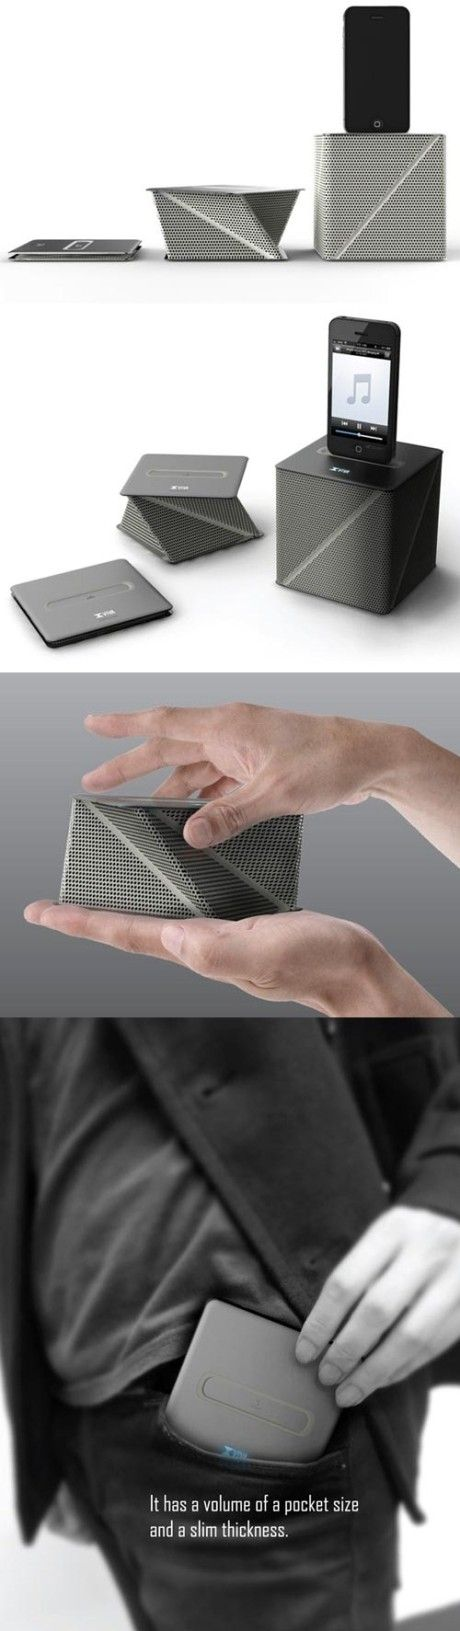 Who would use this portable speaker? The part of me obsessed with playing music on my phone - wherever I am (car, shower, gym, work, BBQ) - would love this!!! Design by Jang Se Chan: https://www.facebook.com/scdesign89